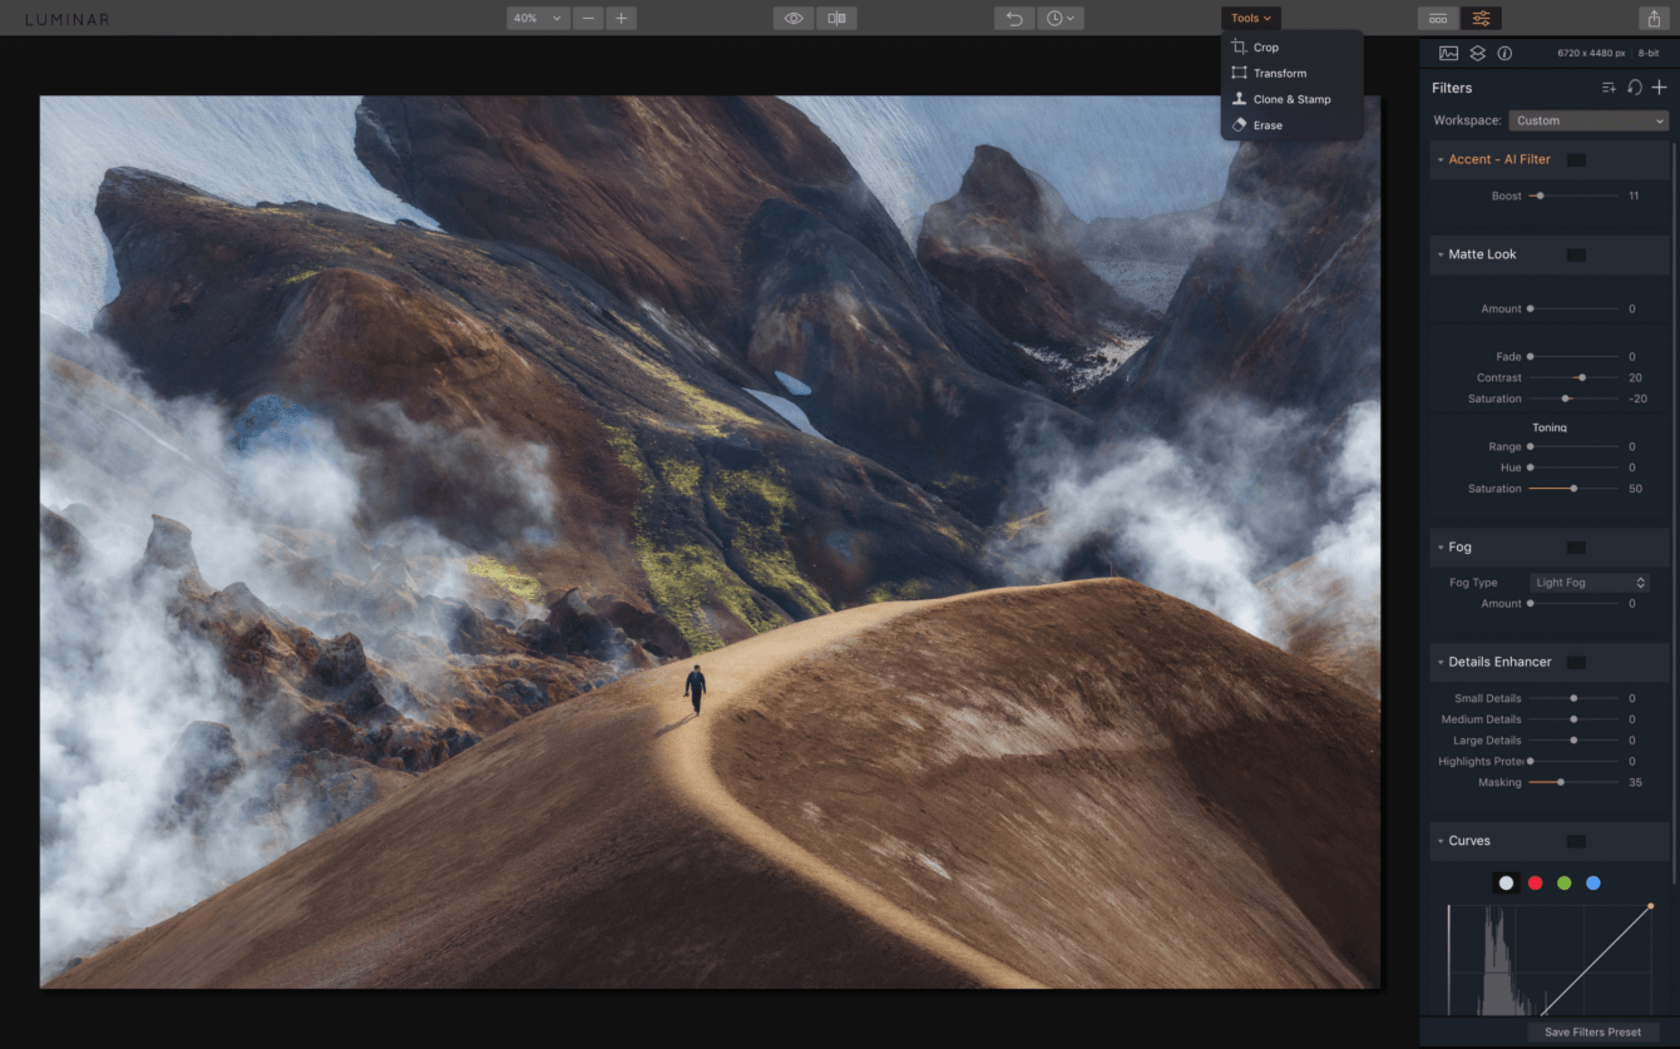 Luminar 2018 Crack Free Download For Windows [ LATEST ]